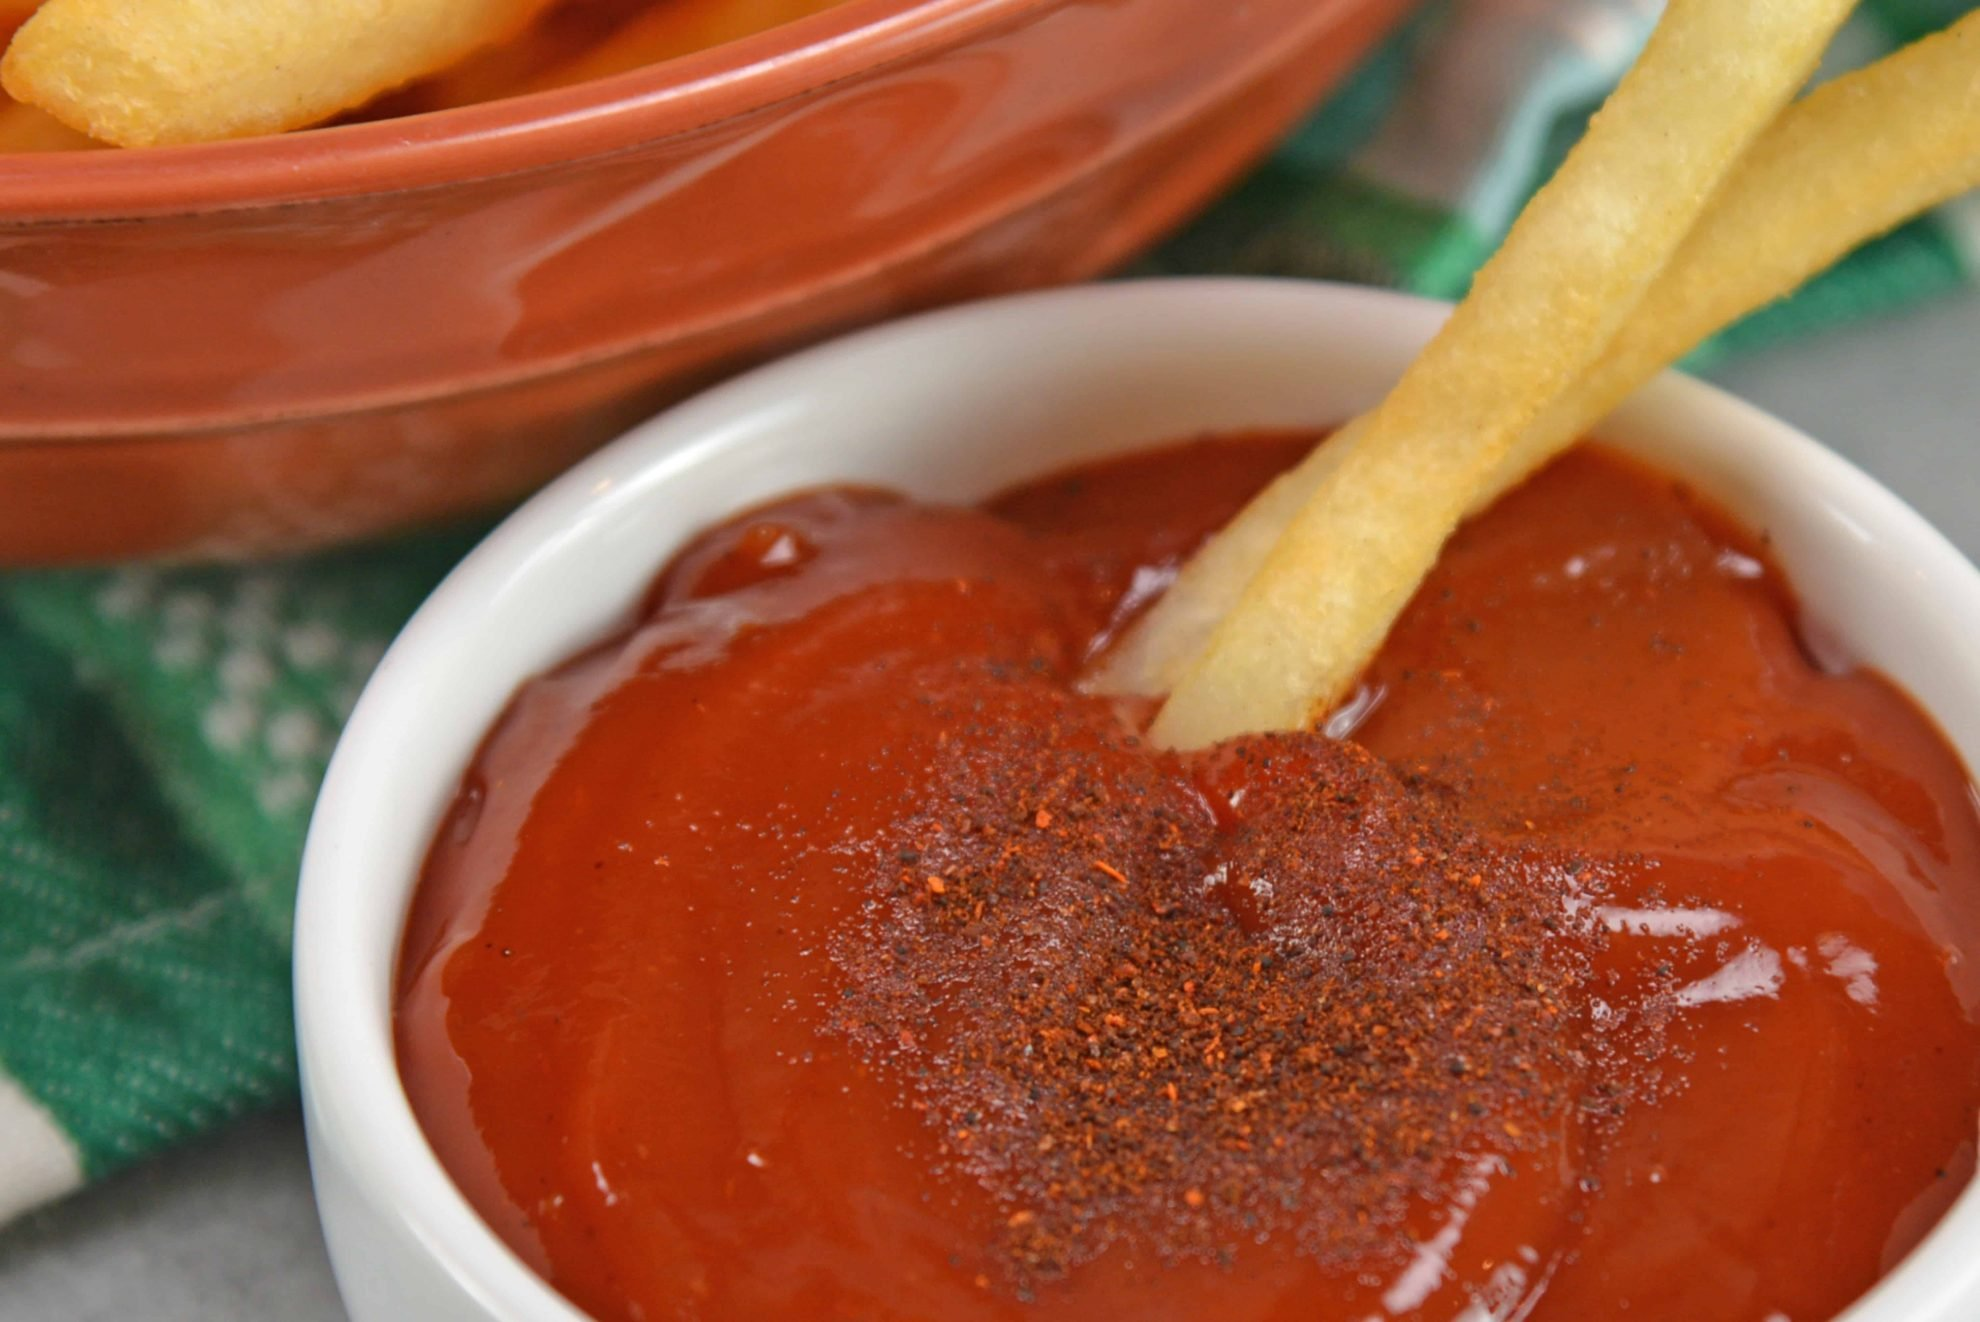 Spicy Ketchup is a sauce that kicks up a classic and favorite. Serve with fries, on a burger or hot dog or anything else that needs some zing! #spicyketchup #hotketchup www.savoryexperiments.com